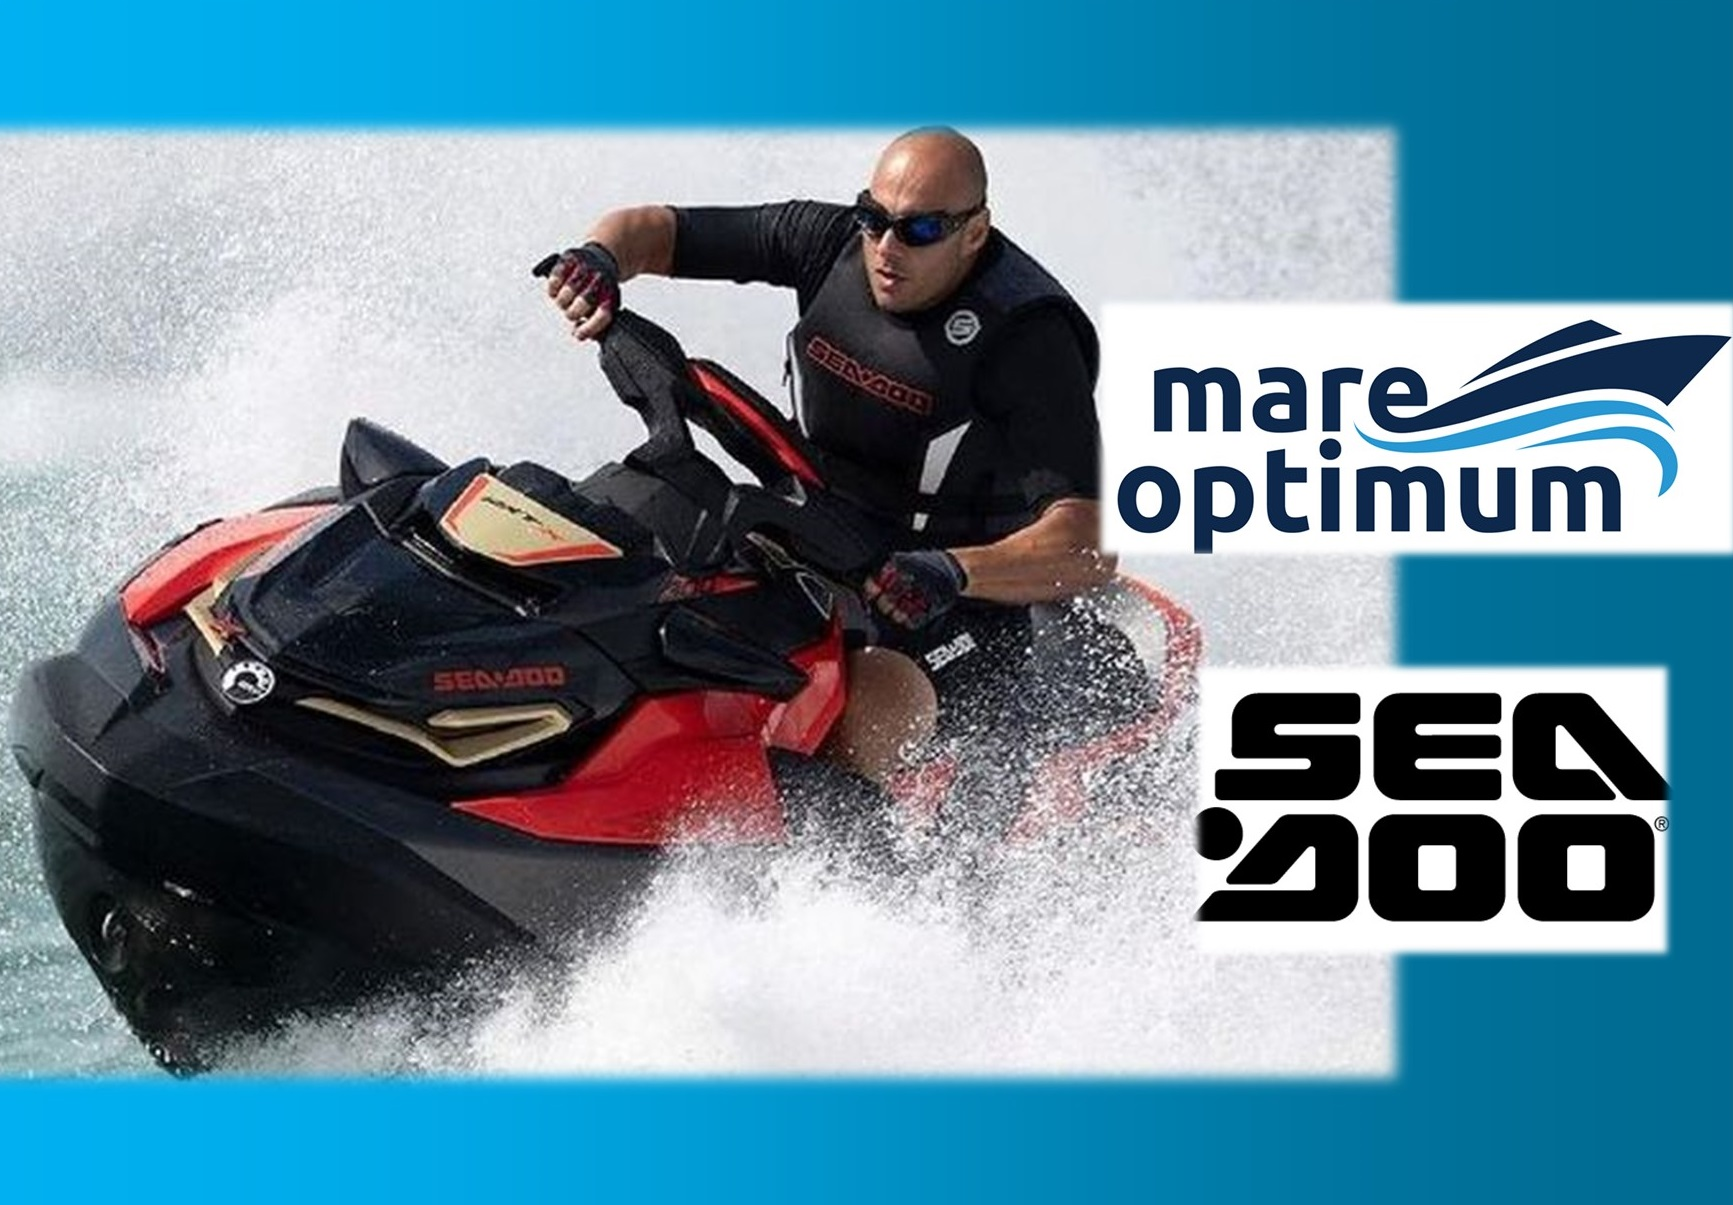 Mare Optimum - Seadoo